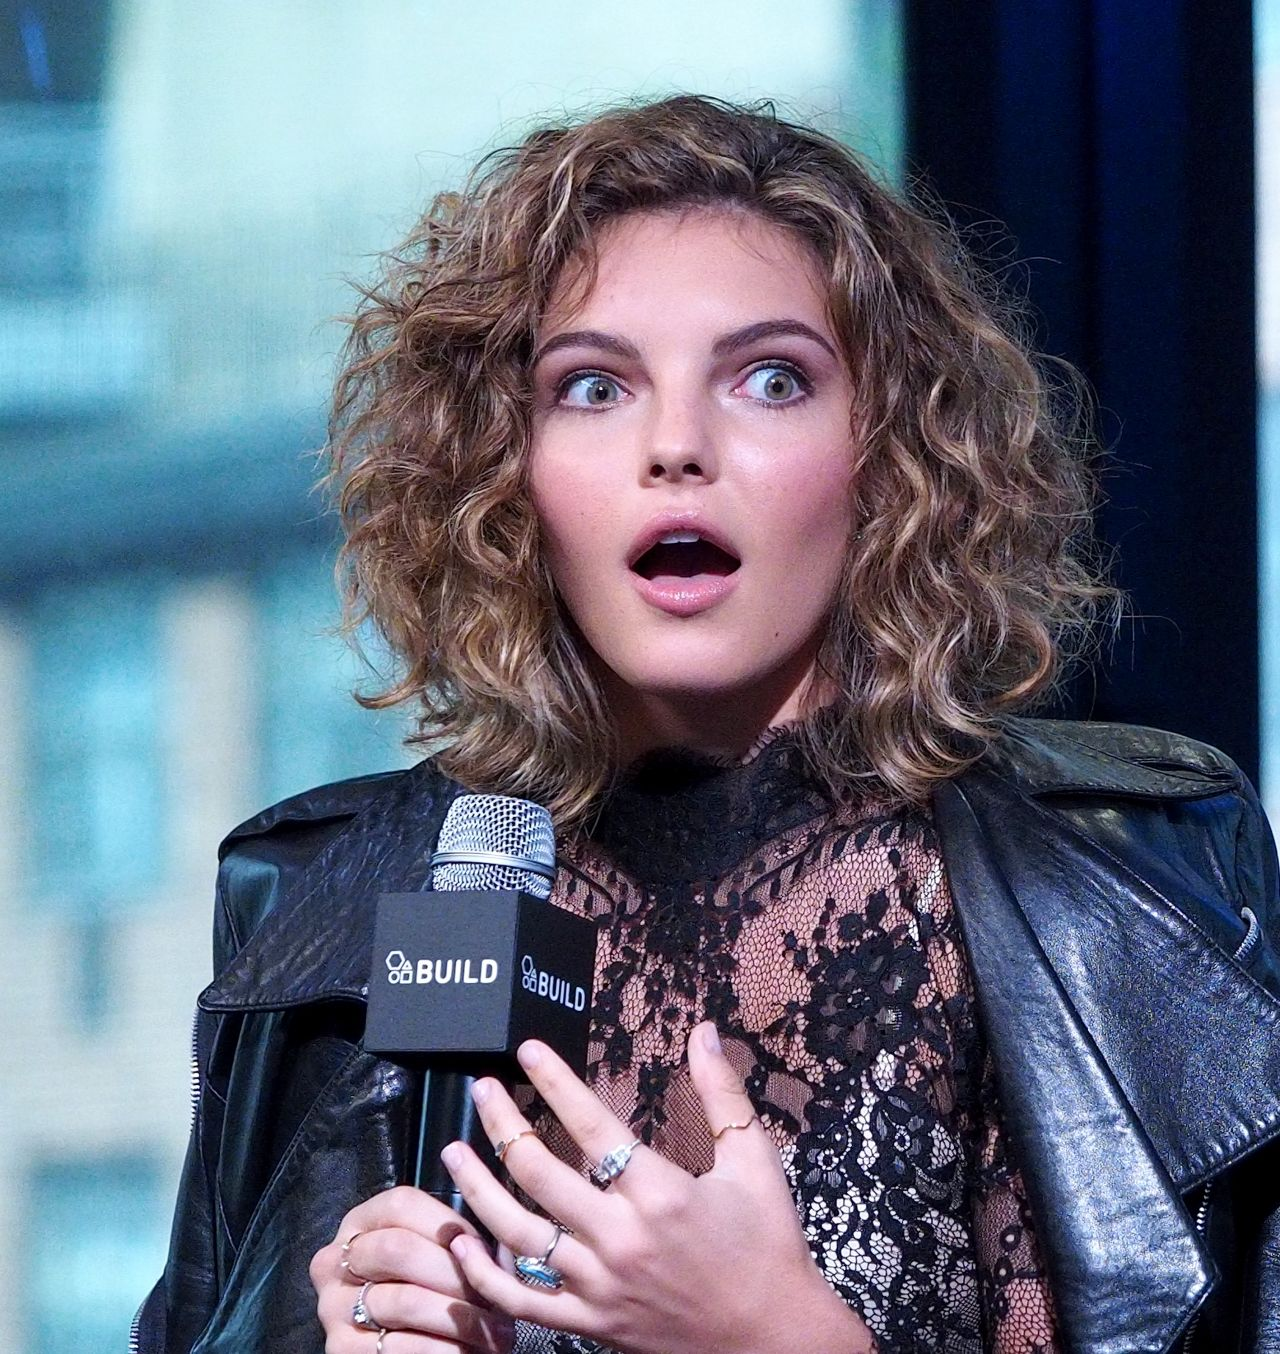 Celebrites Camren Bicondova nudes (95 photo), Sexy, Fappening, Feet, cleavage 2019